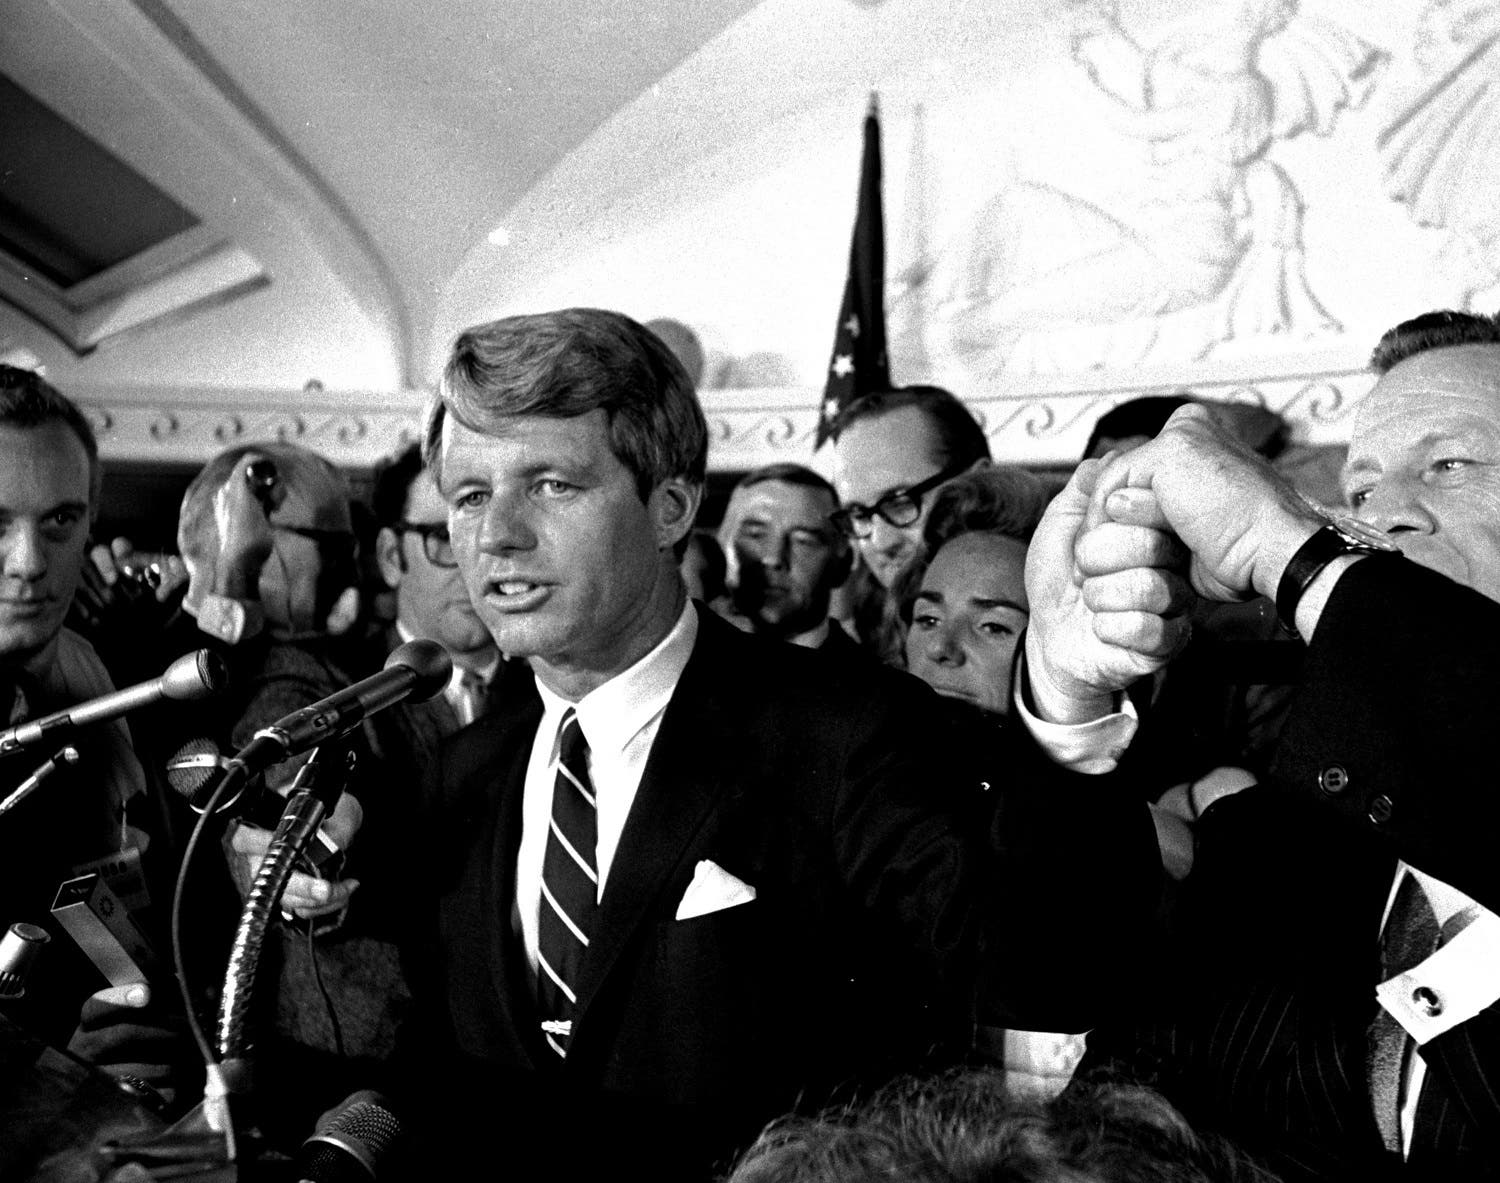 Sen. Robert F. Kennedy addresses a throng of supporters in the Ambassador Hotel before he turned into the kitchen corridor and was critically wounded. (AP)